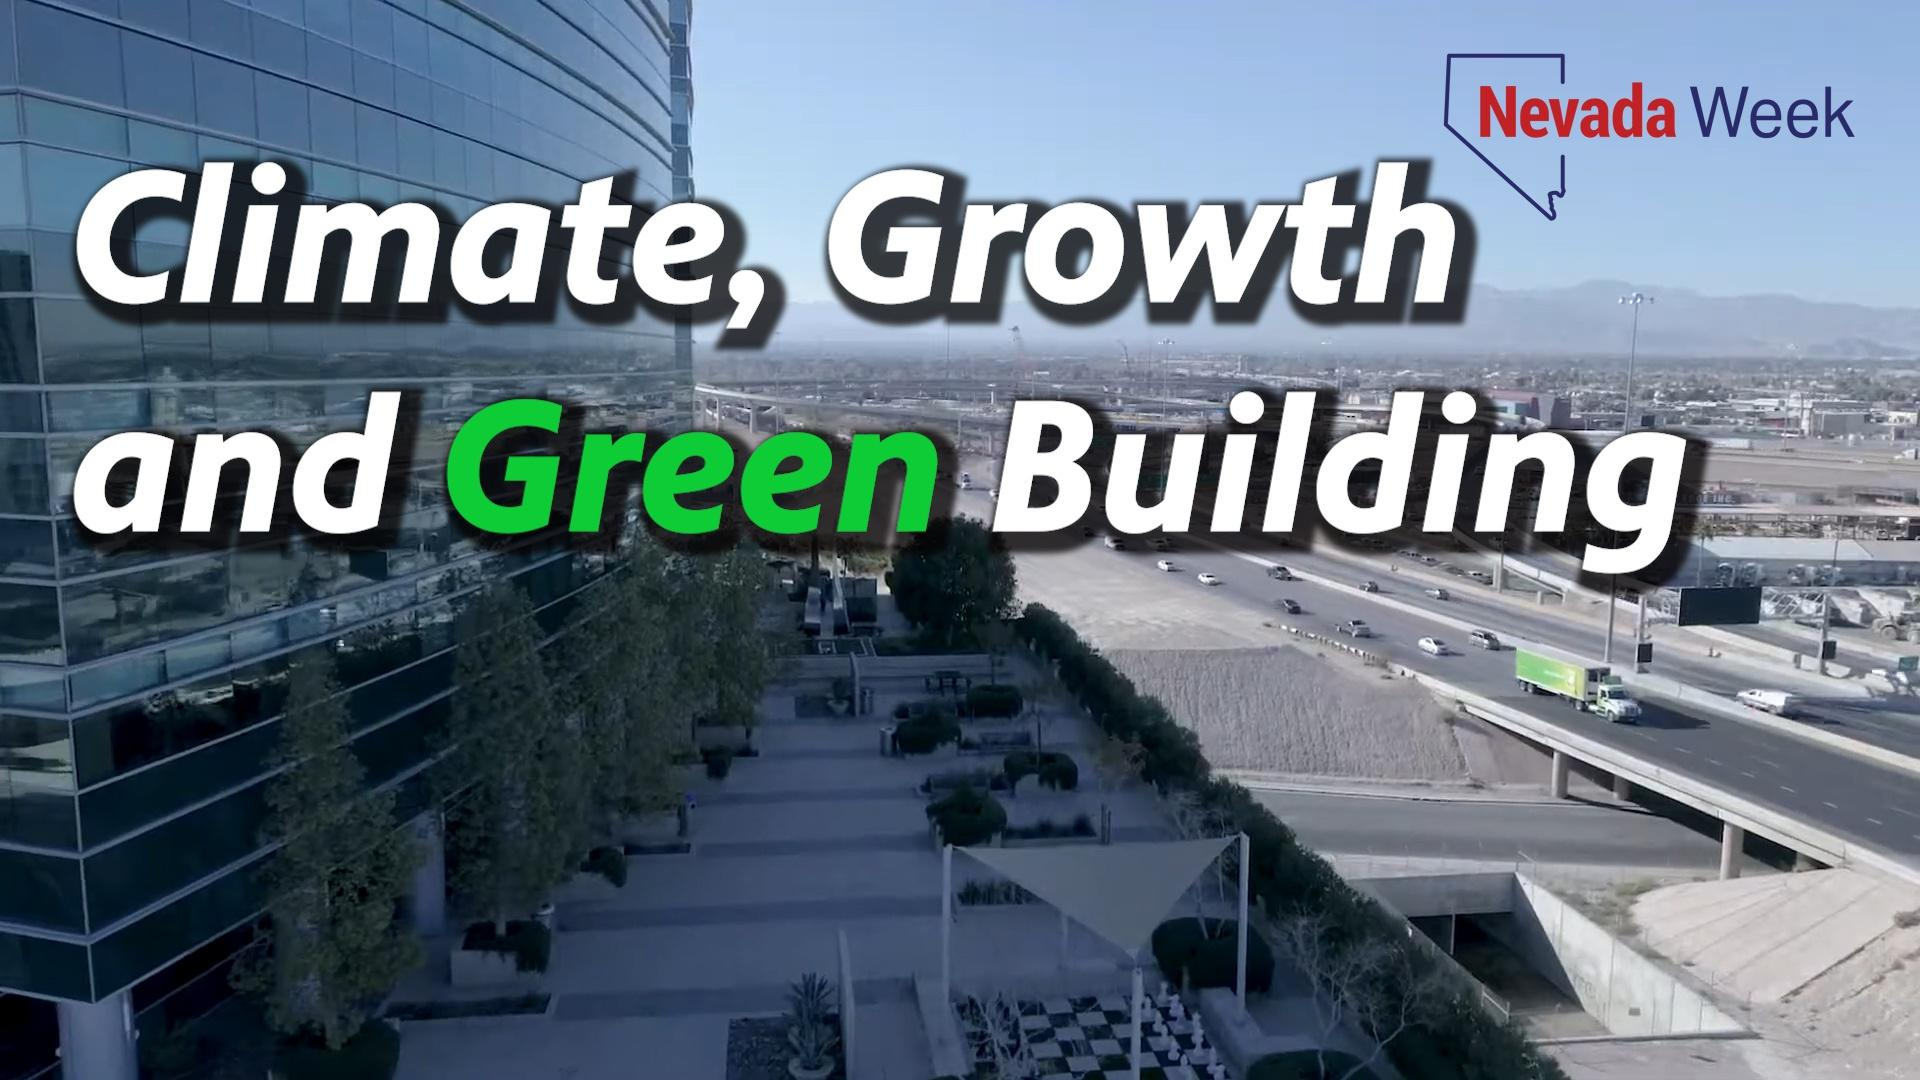 Climate, Growth and Green Building